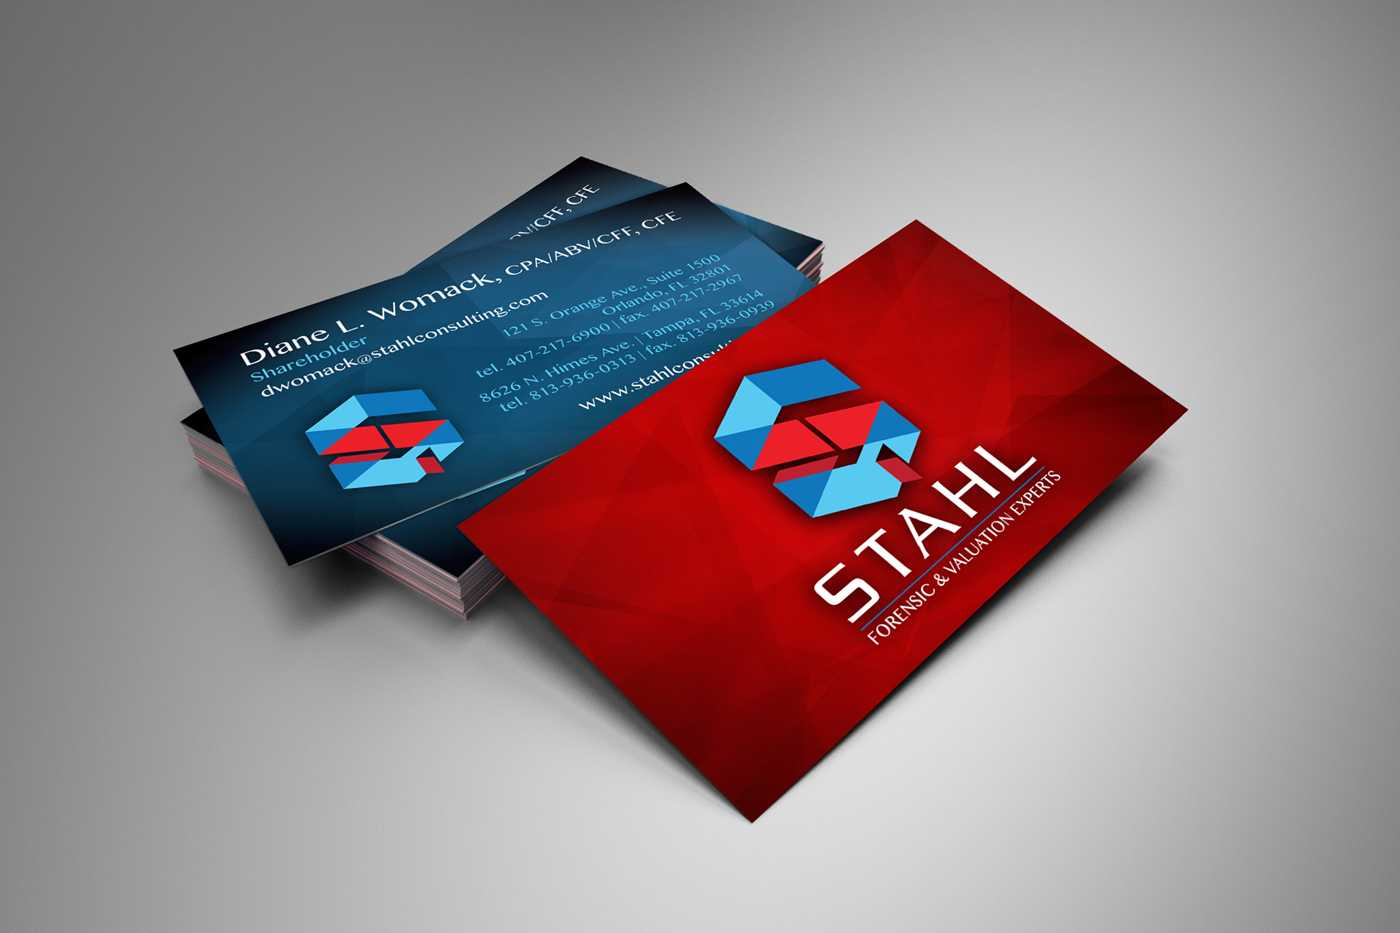 Stahl stationery design and printing